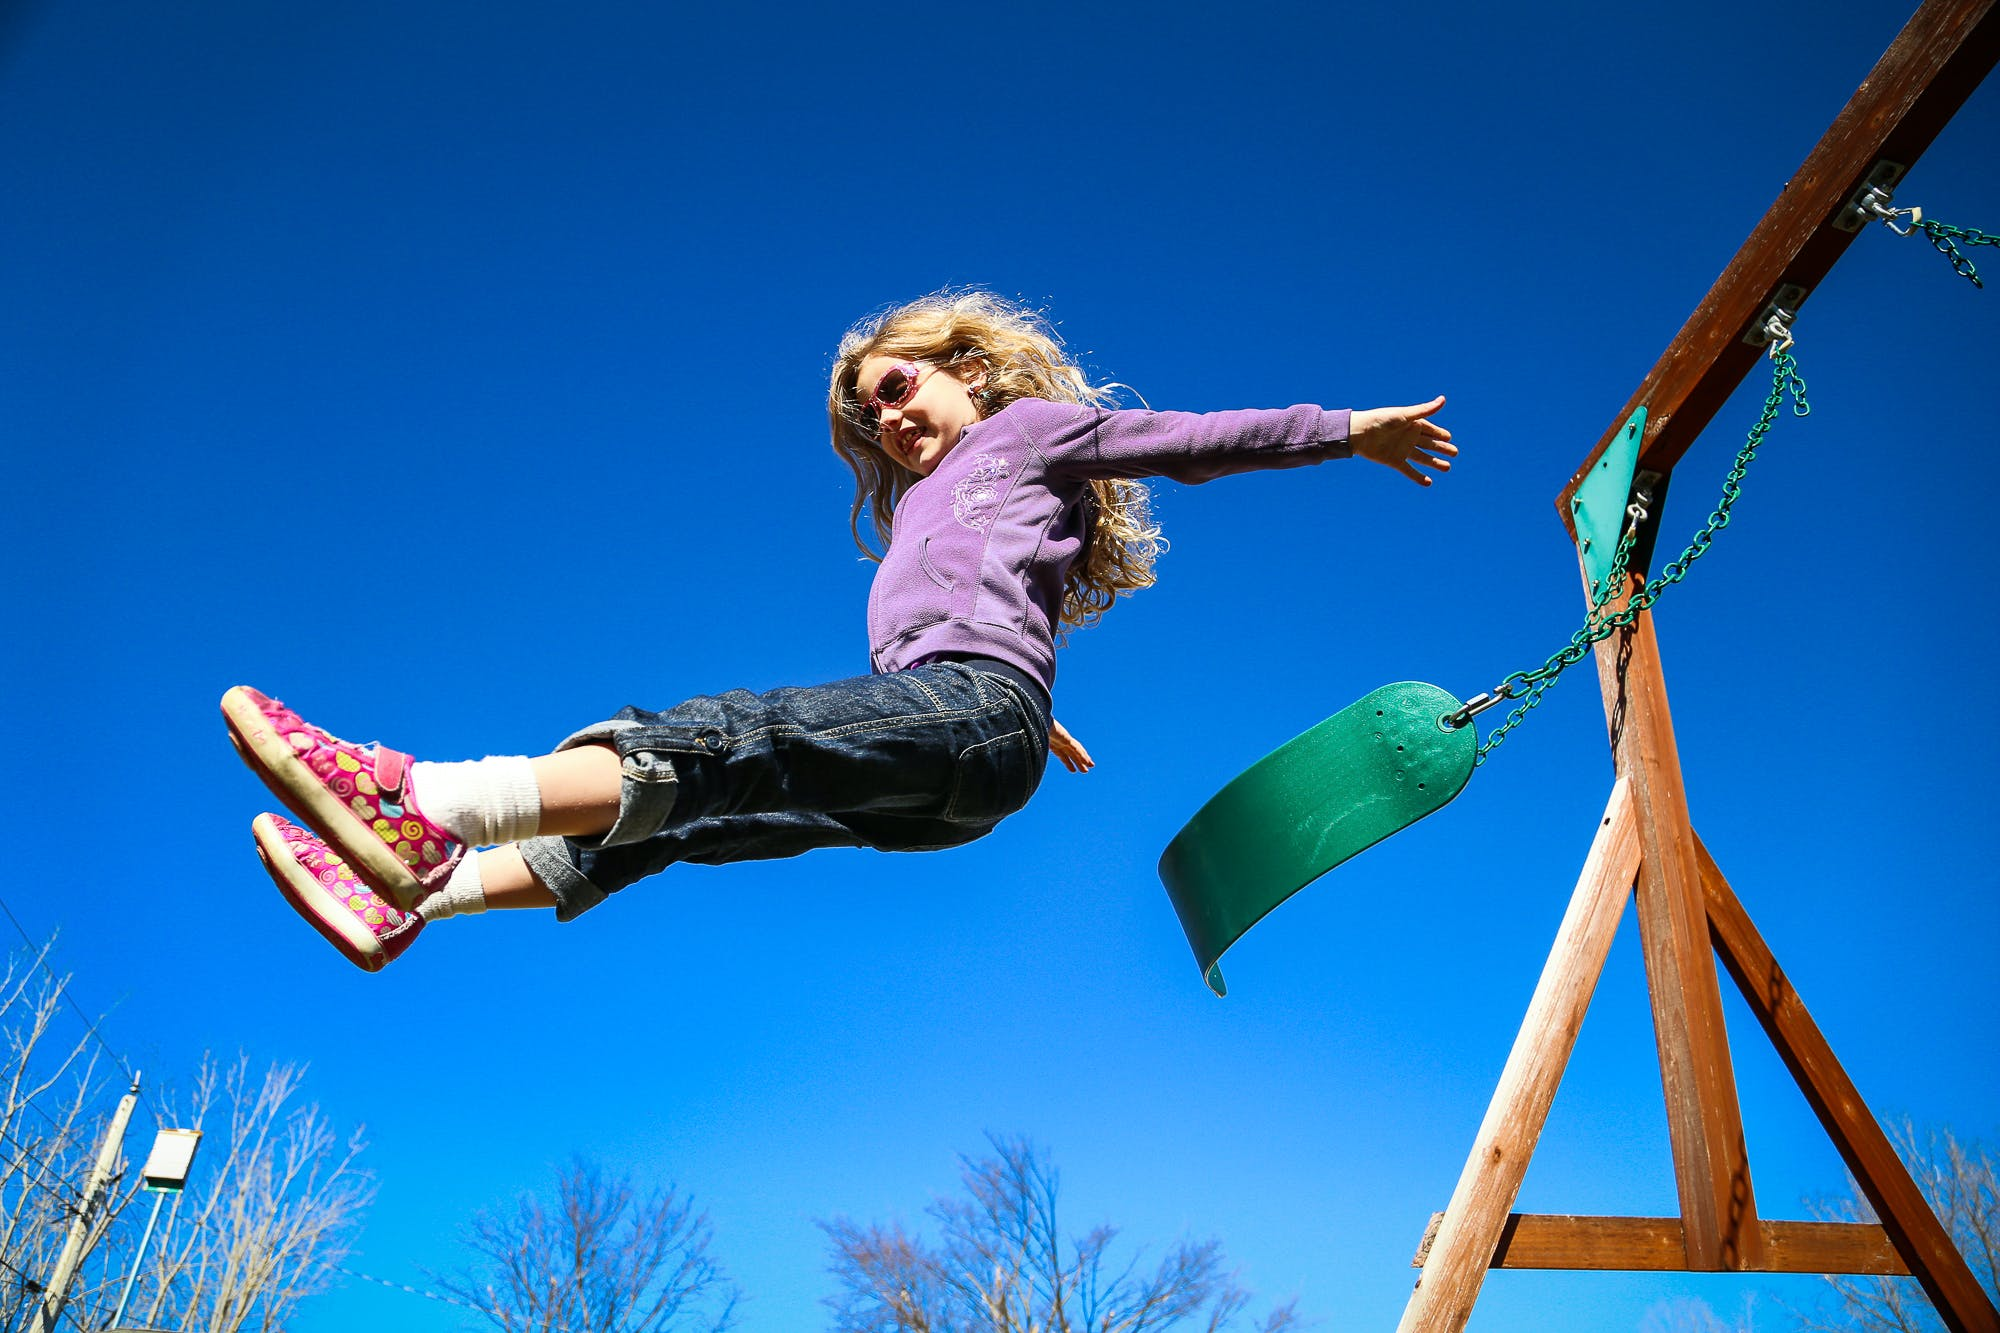 Free stock photo of flying, girl, jump off swing, swing